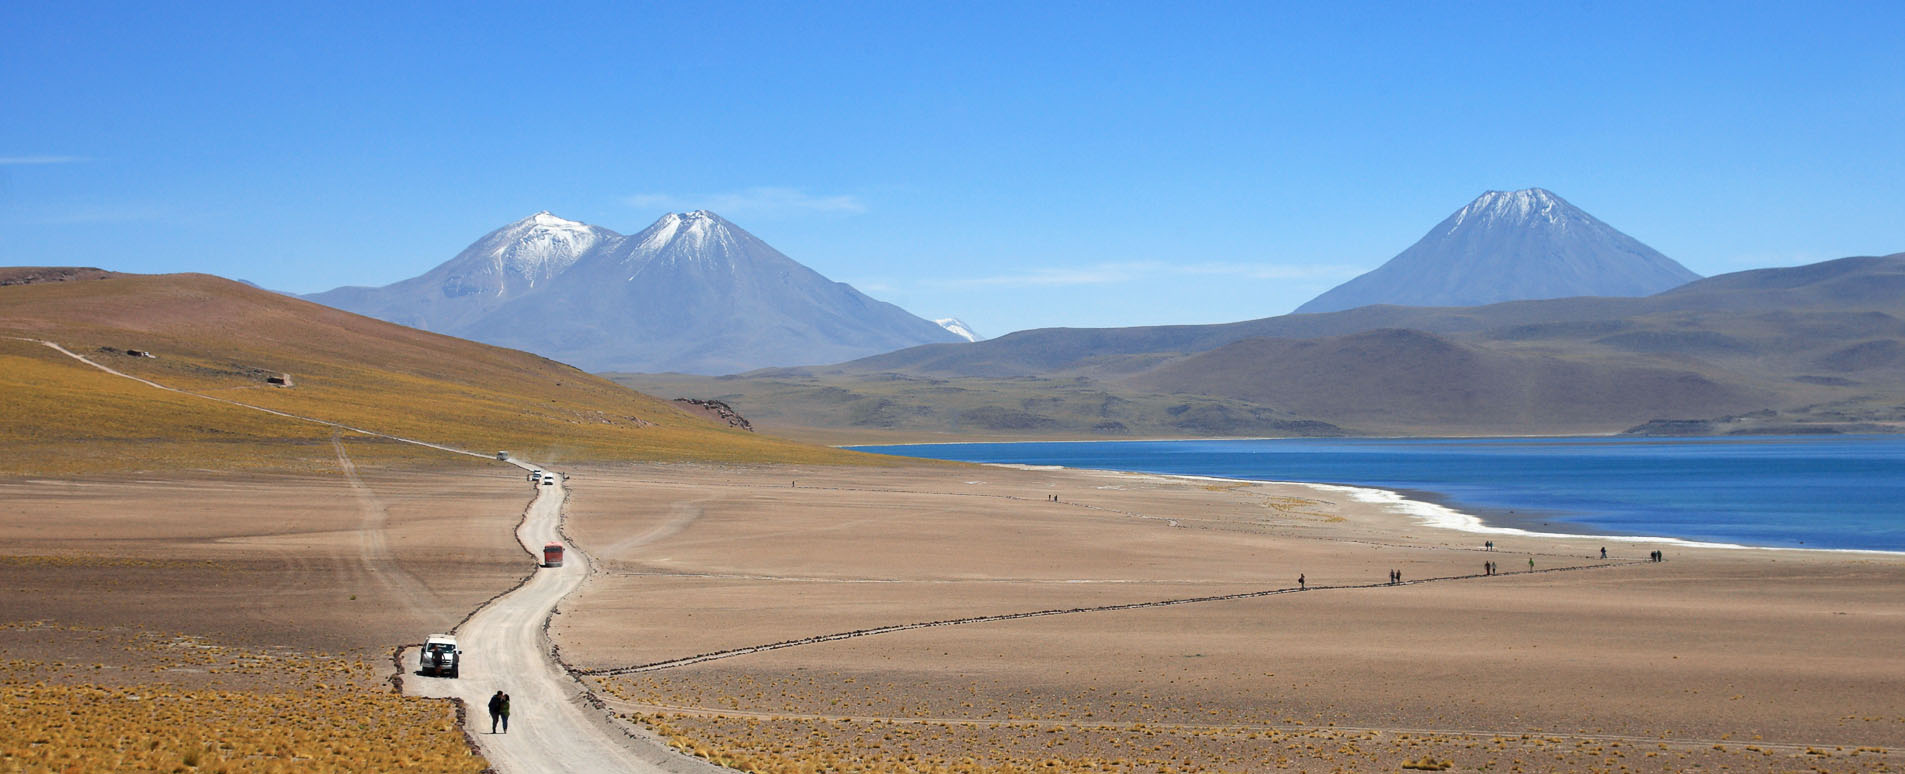 chile selfdrive holidays